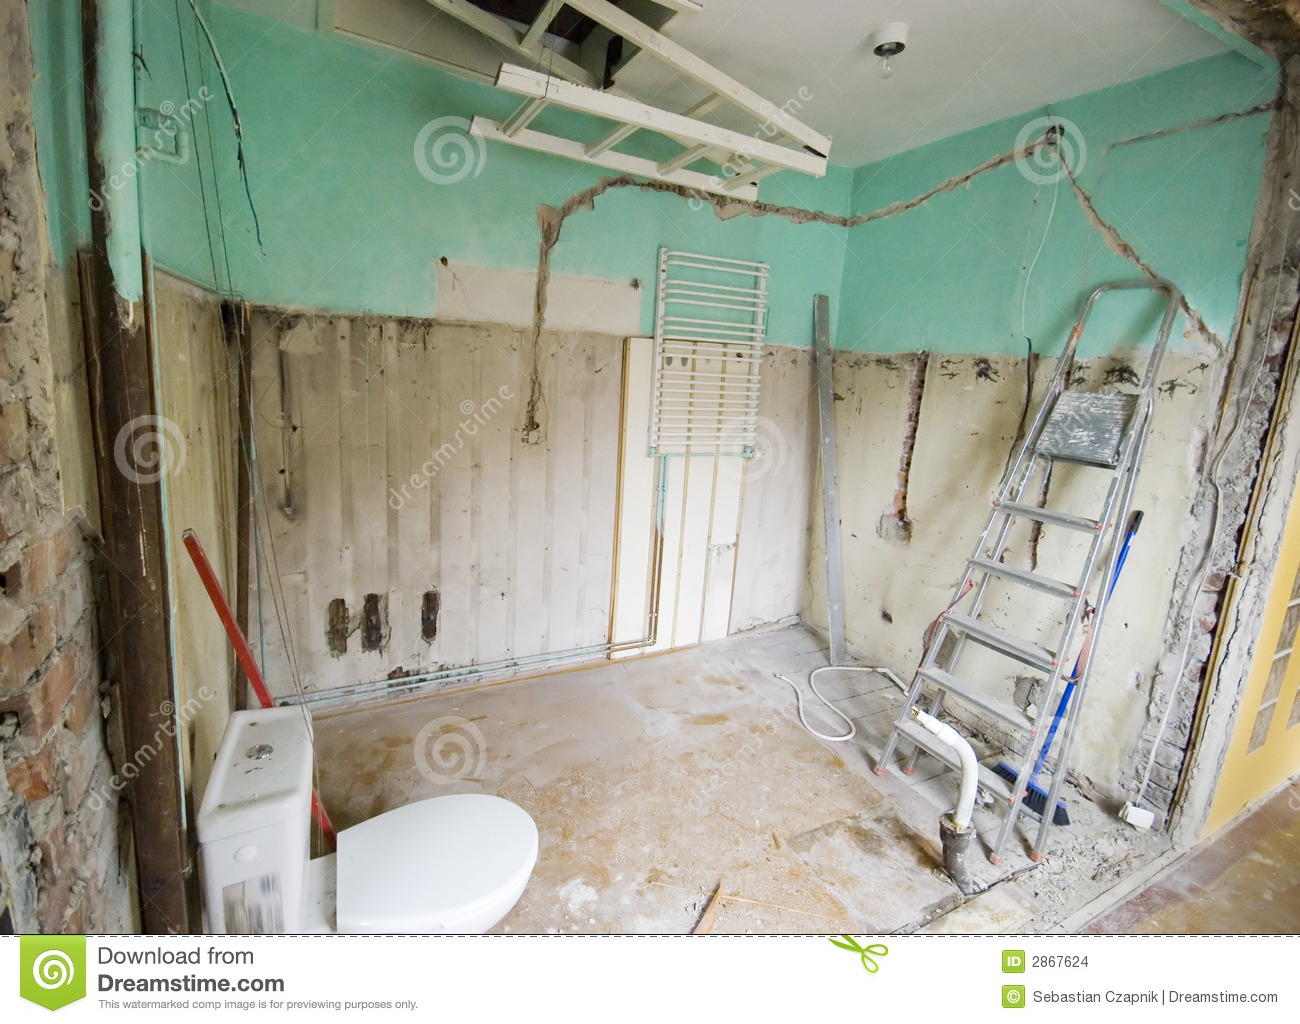 Bathroom Renovation. Stock Images - Image: 2867624